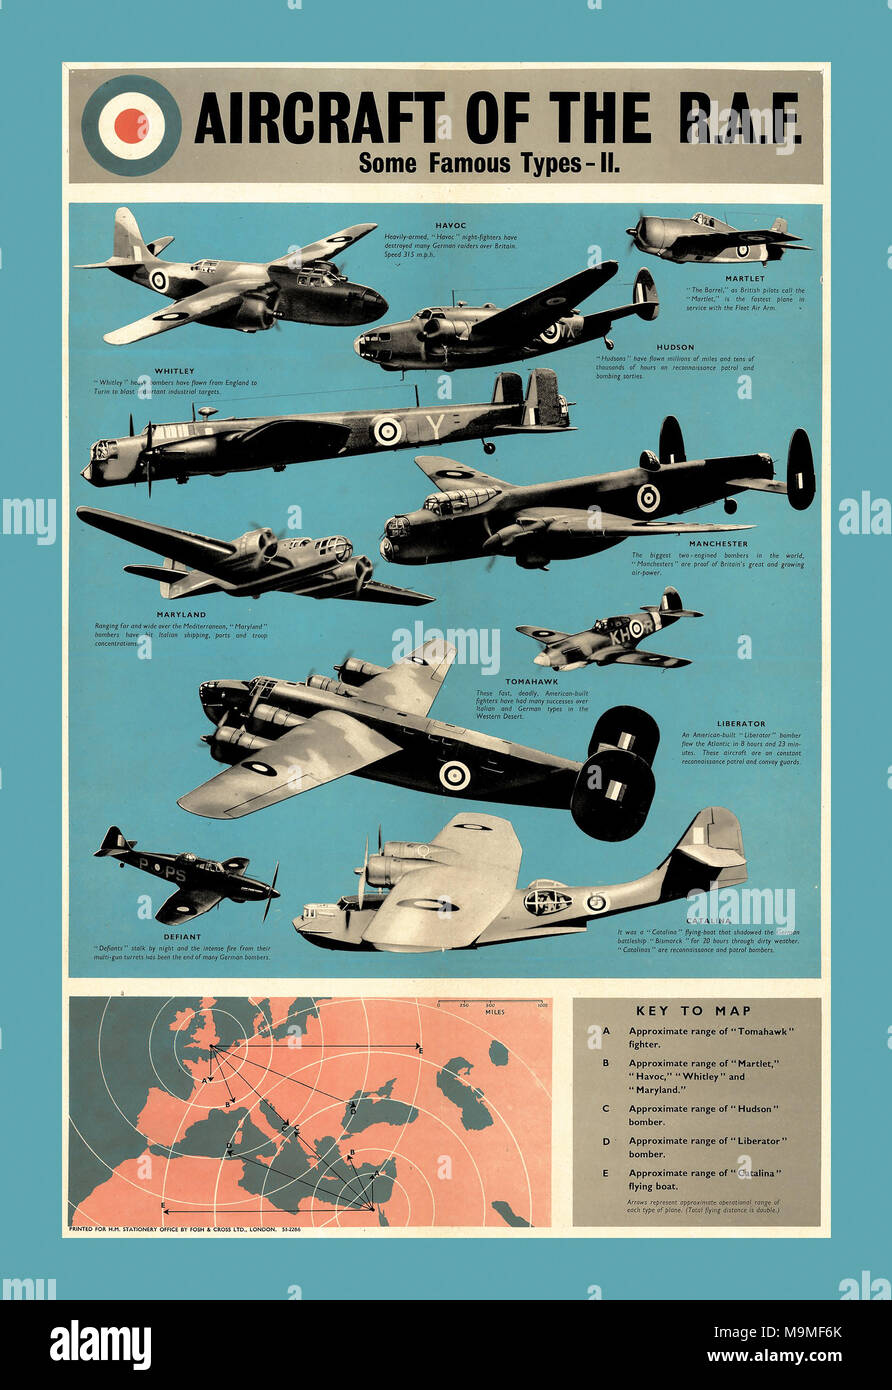 British Propaganda Poster supporting the Royal Airforce 1942 Aircraft types Of The R.A.F. During WW2 and The Battle Of Britain - Stock Image